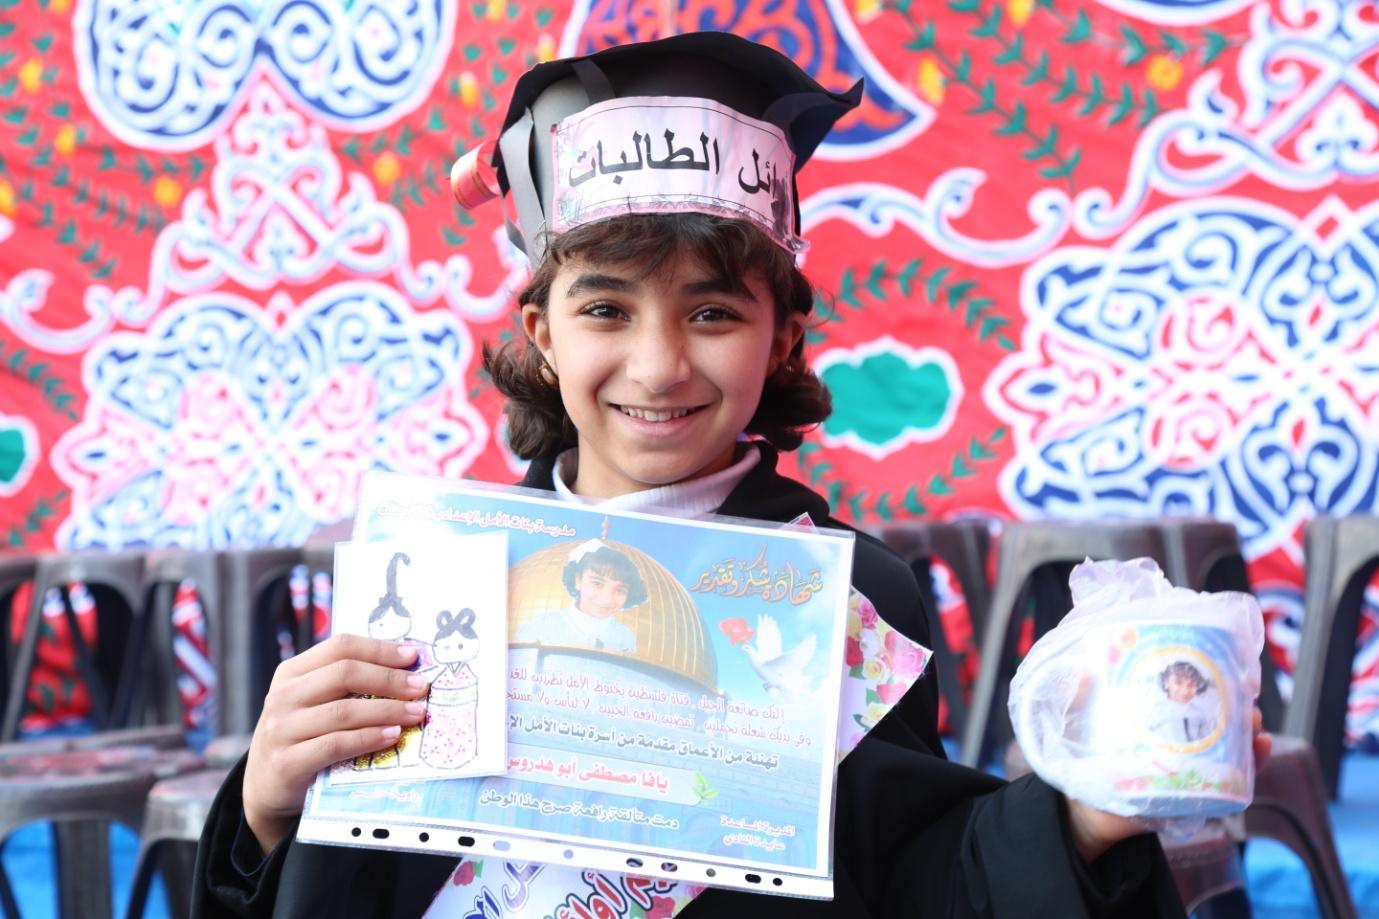 Yafa Abu Hadrous, a sixth-grade student at the honouring ceremony at Al-Amal Preparatory Girls' School in Khan Younis. © 2016 UNRWA Photo by Ibrahim Yaghi